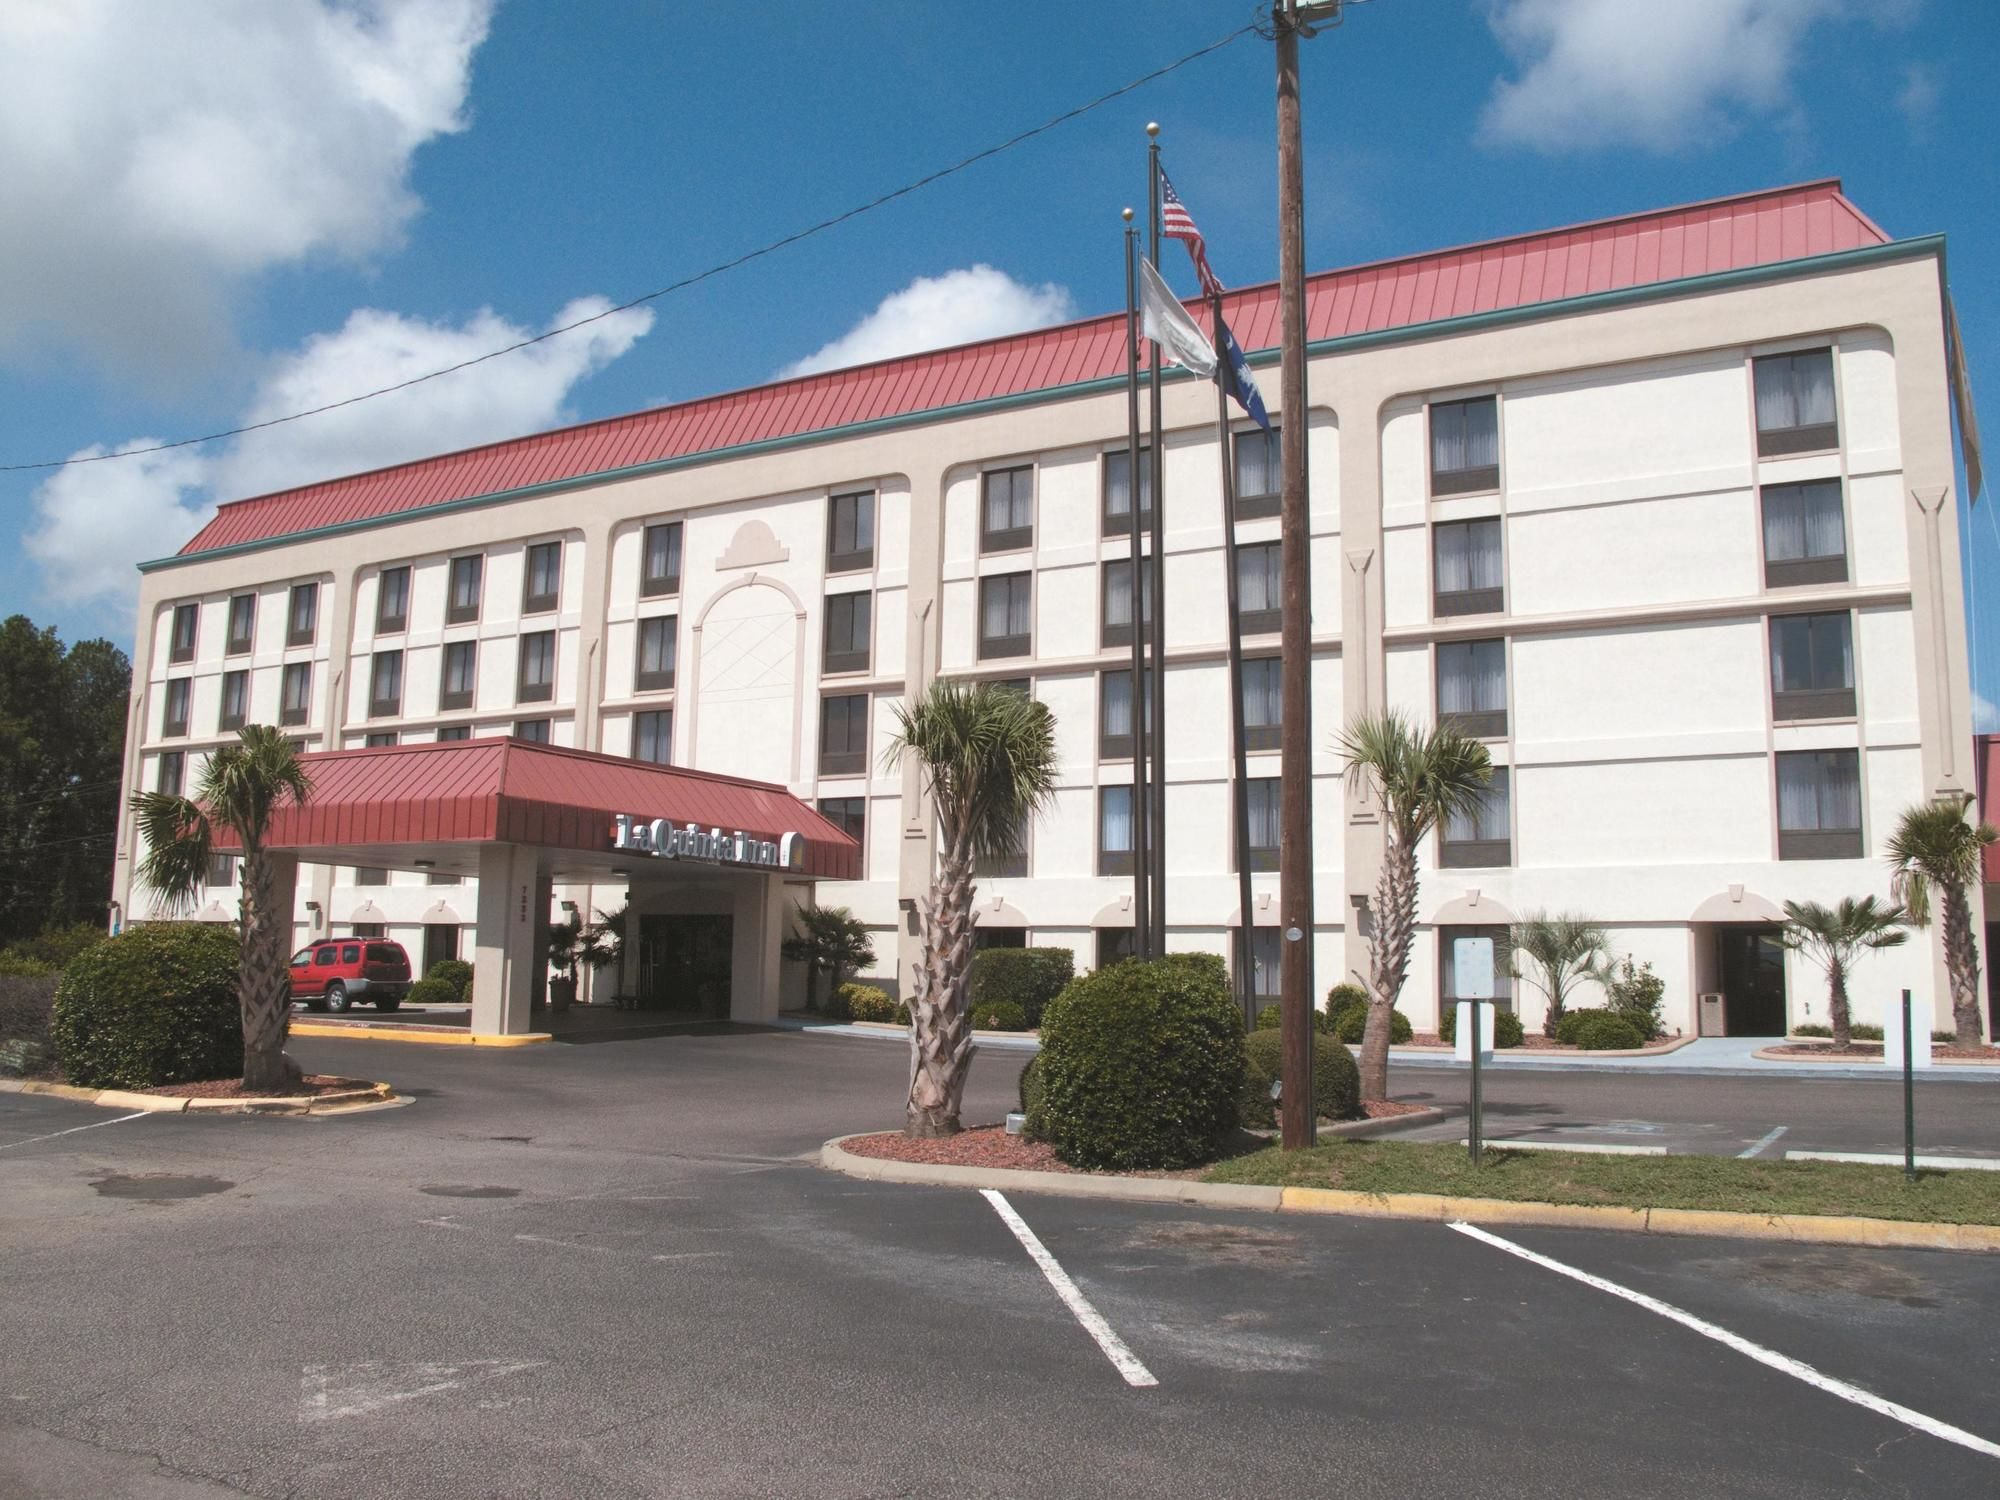 LaQuinta Inn in Columbia, SC